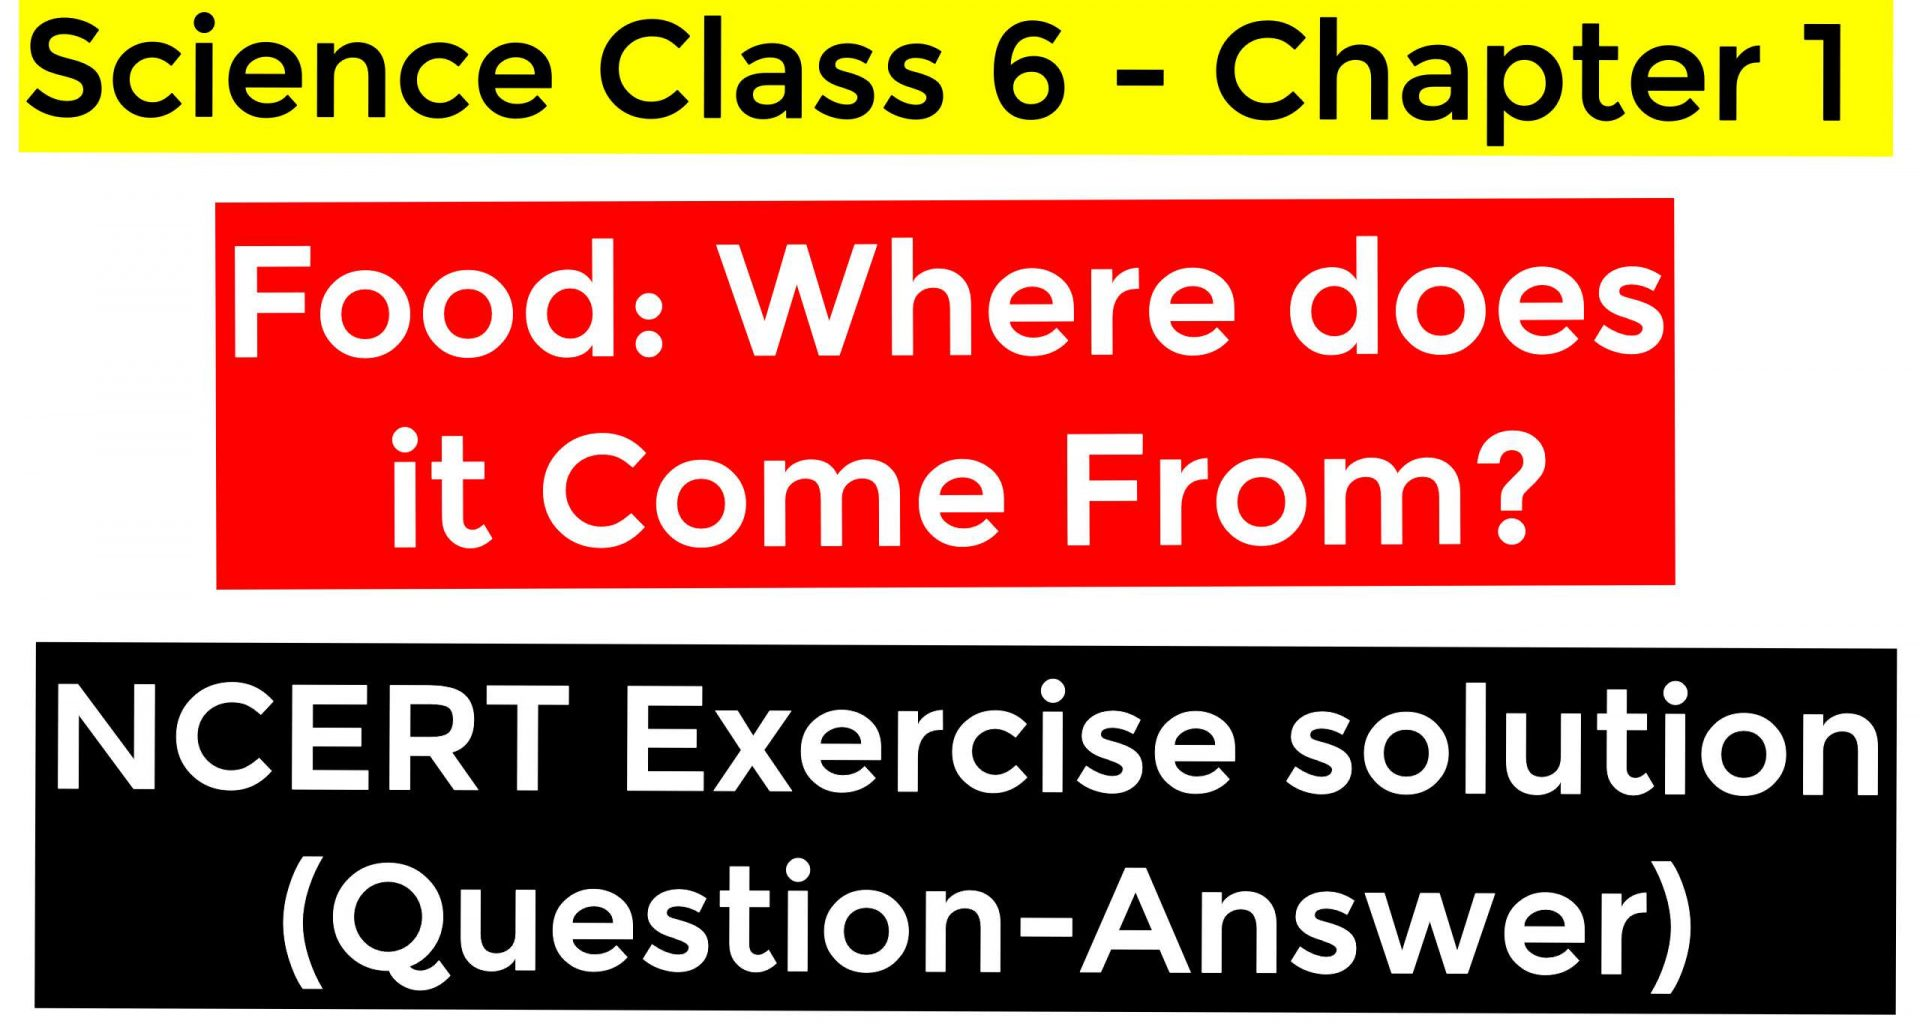 Science Class 6 - Chapter 1 - Food Where does it Come From - NCERT Exercise solution (Question-Answer)